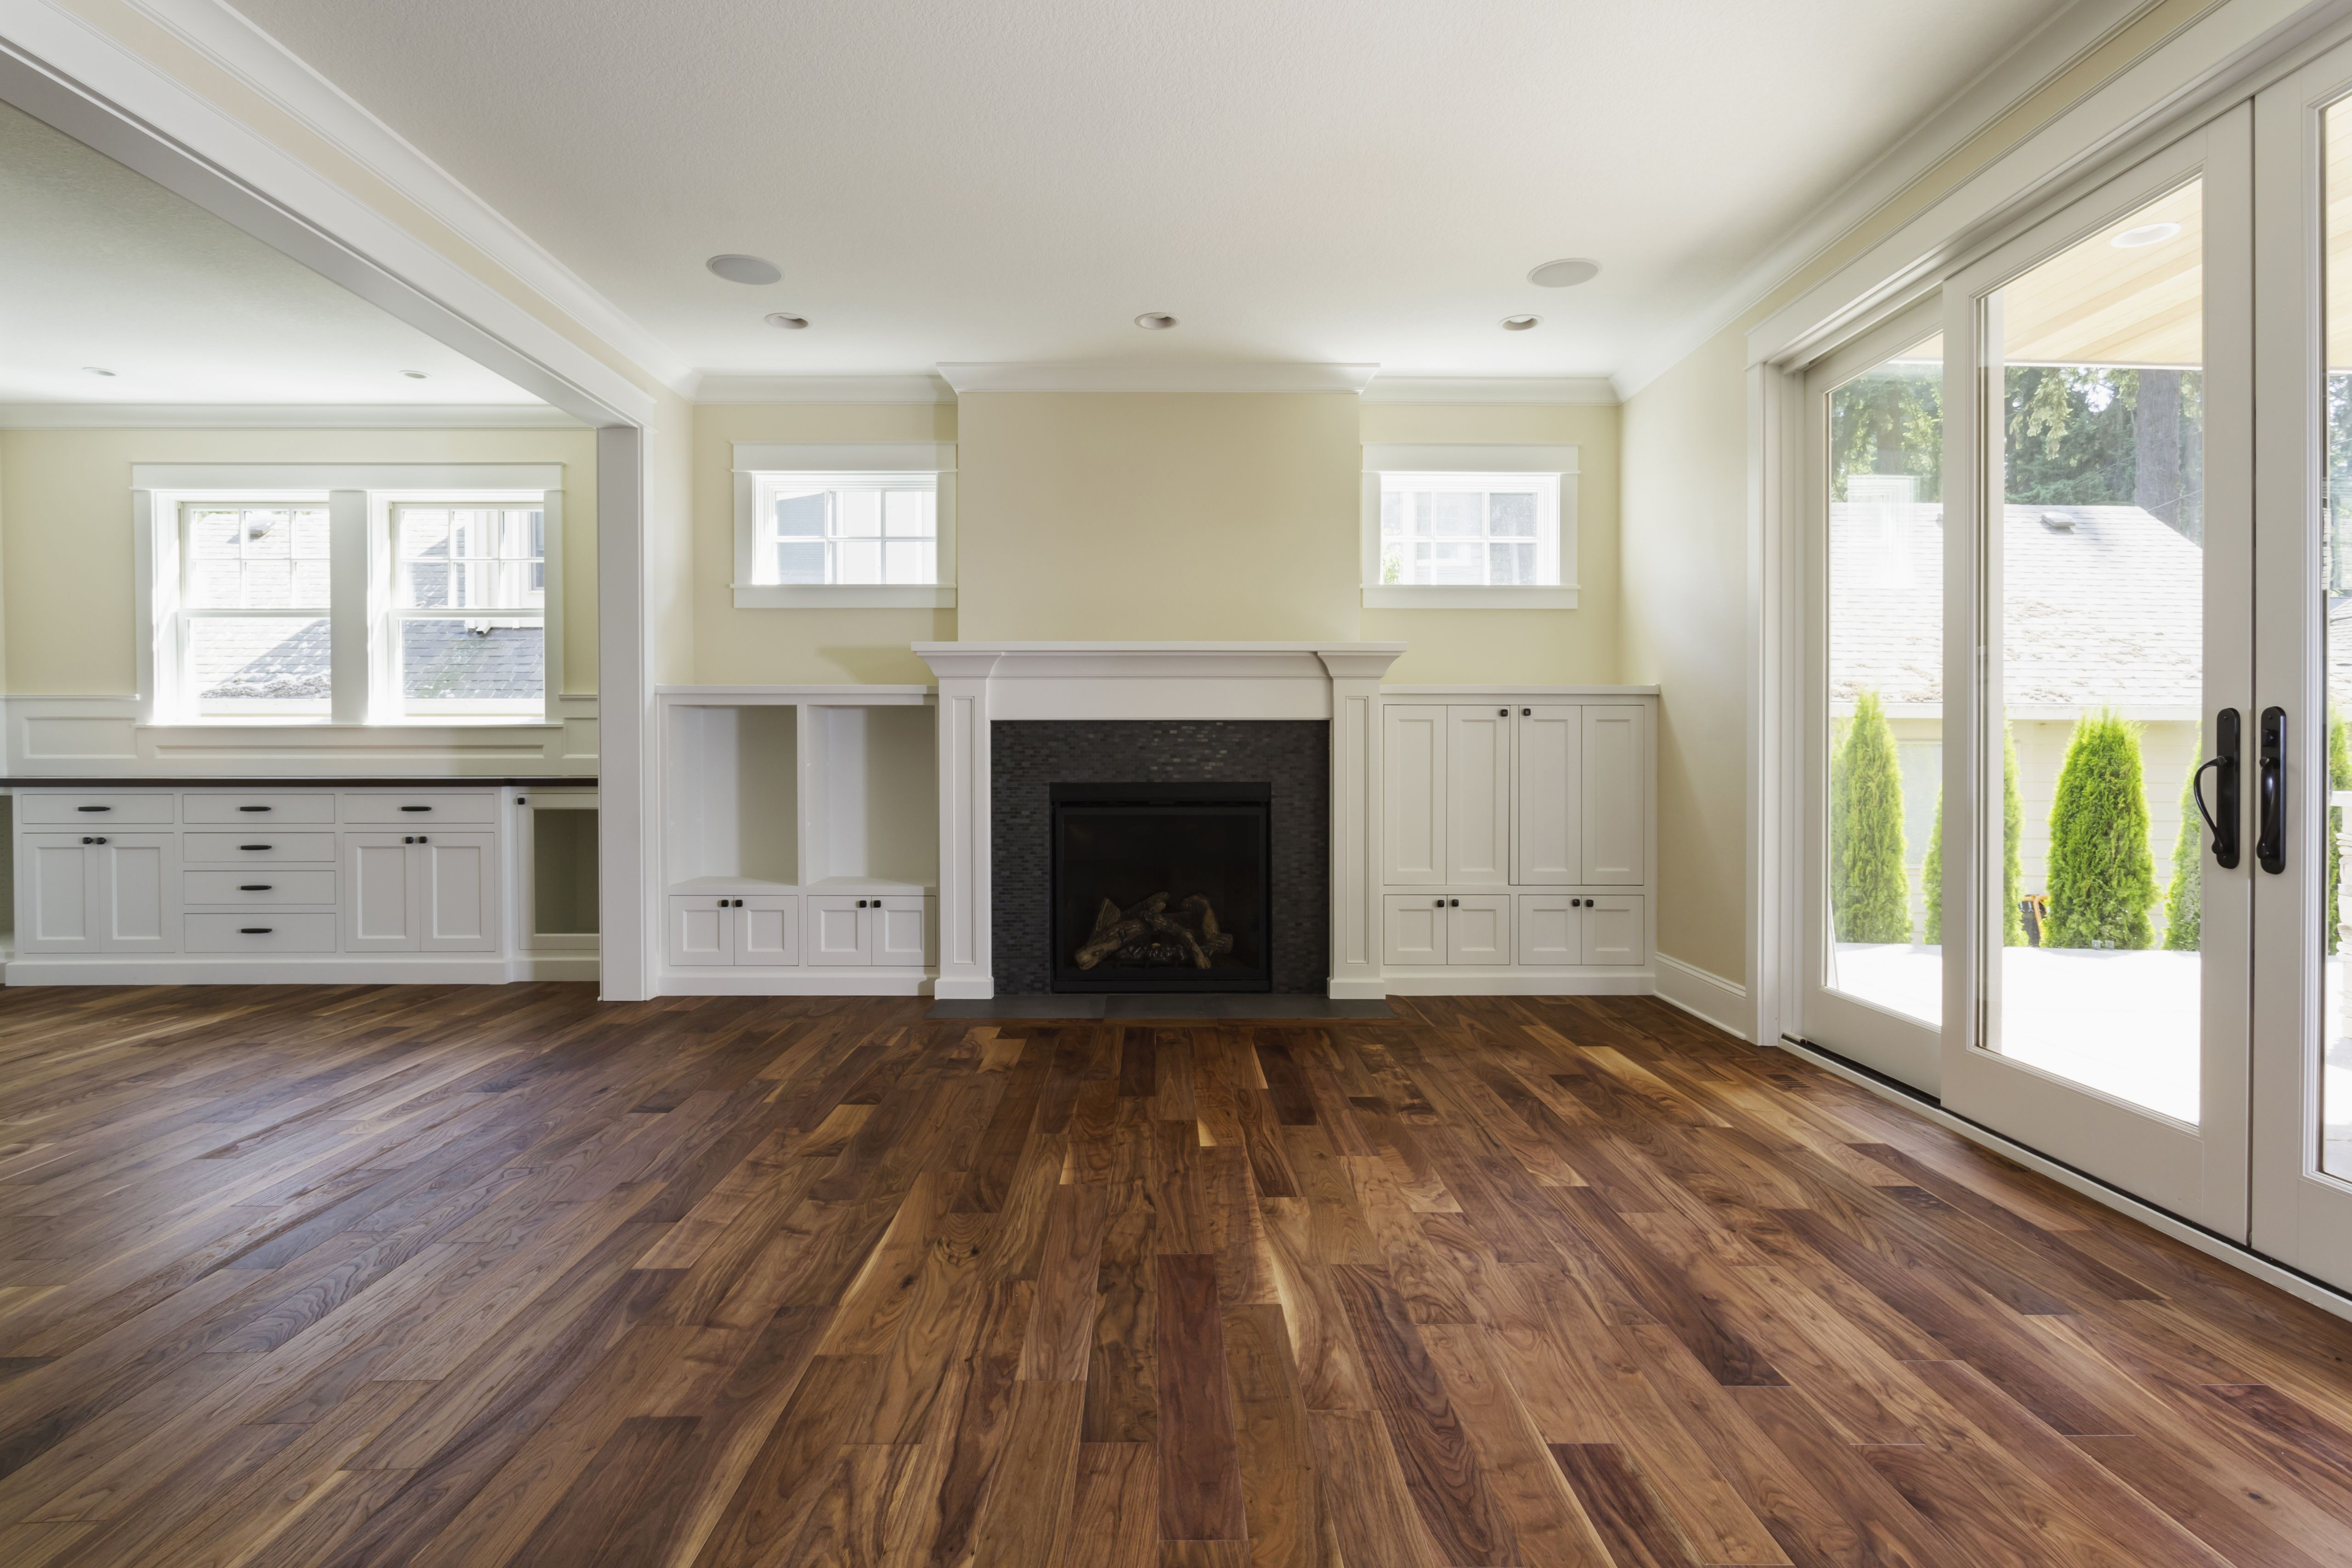 discount hardwood floors molding of the pros and cons of prefinished hardwood flooring with fireplace and built in shelves in living room 482143011 57bef8e33df78cc16e035397